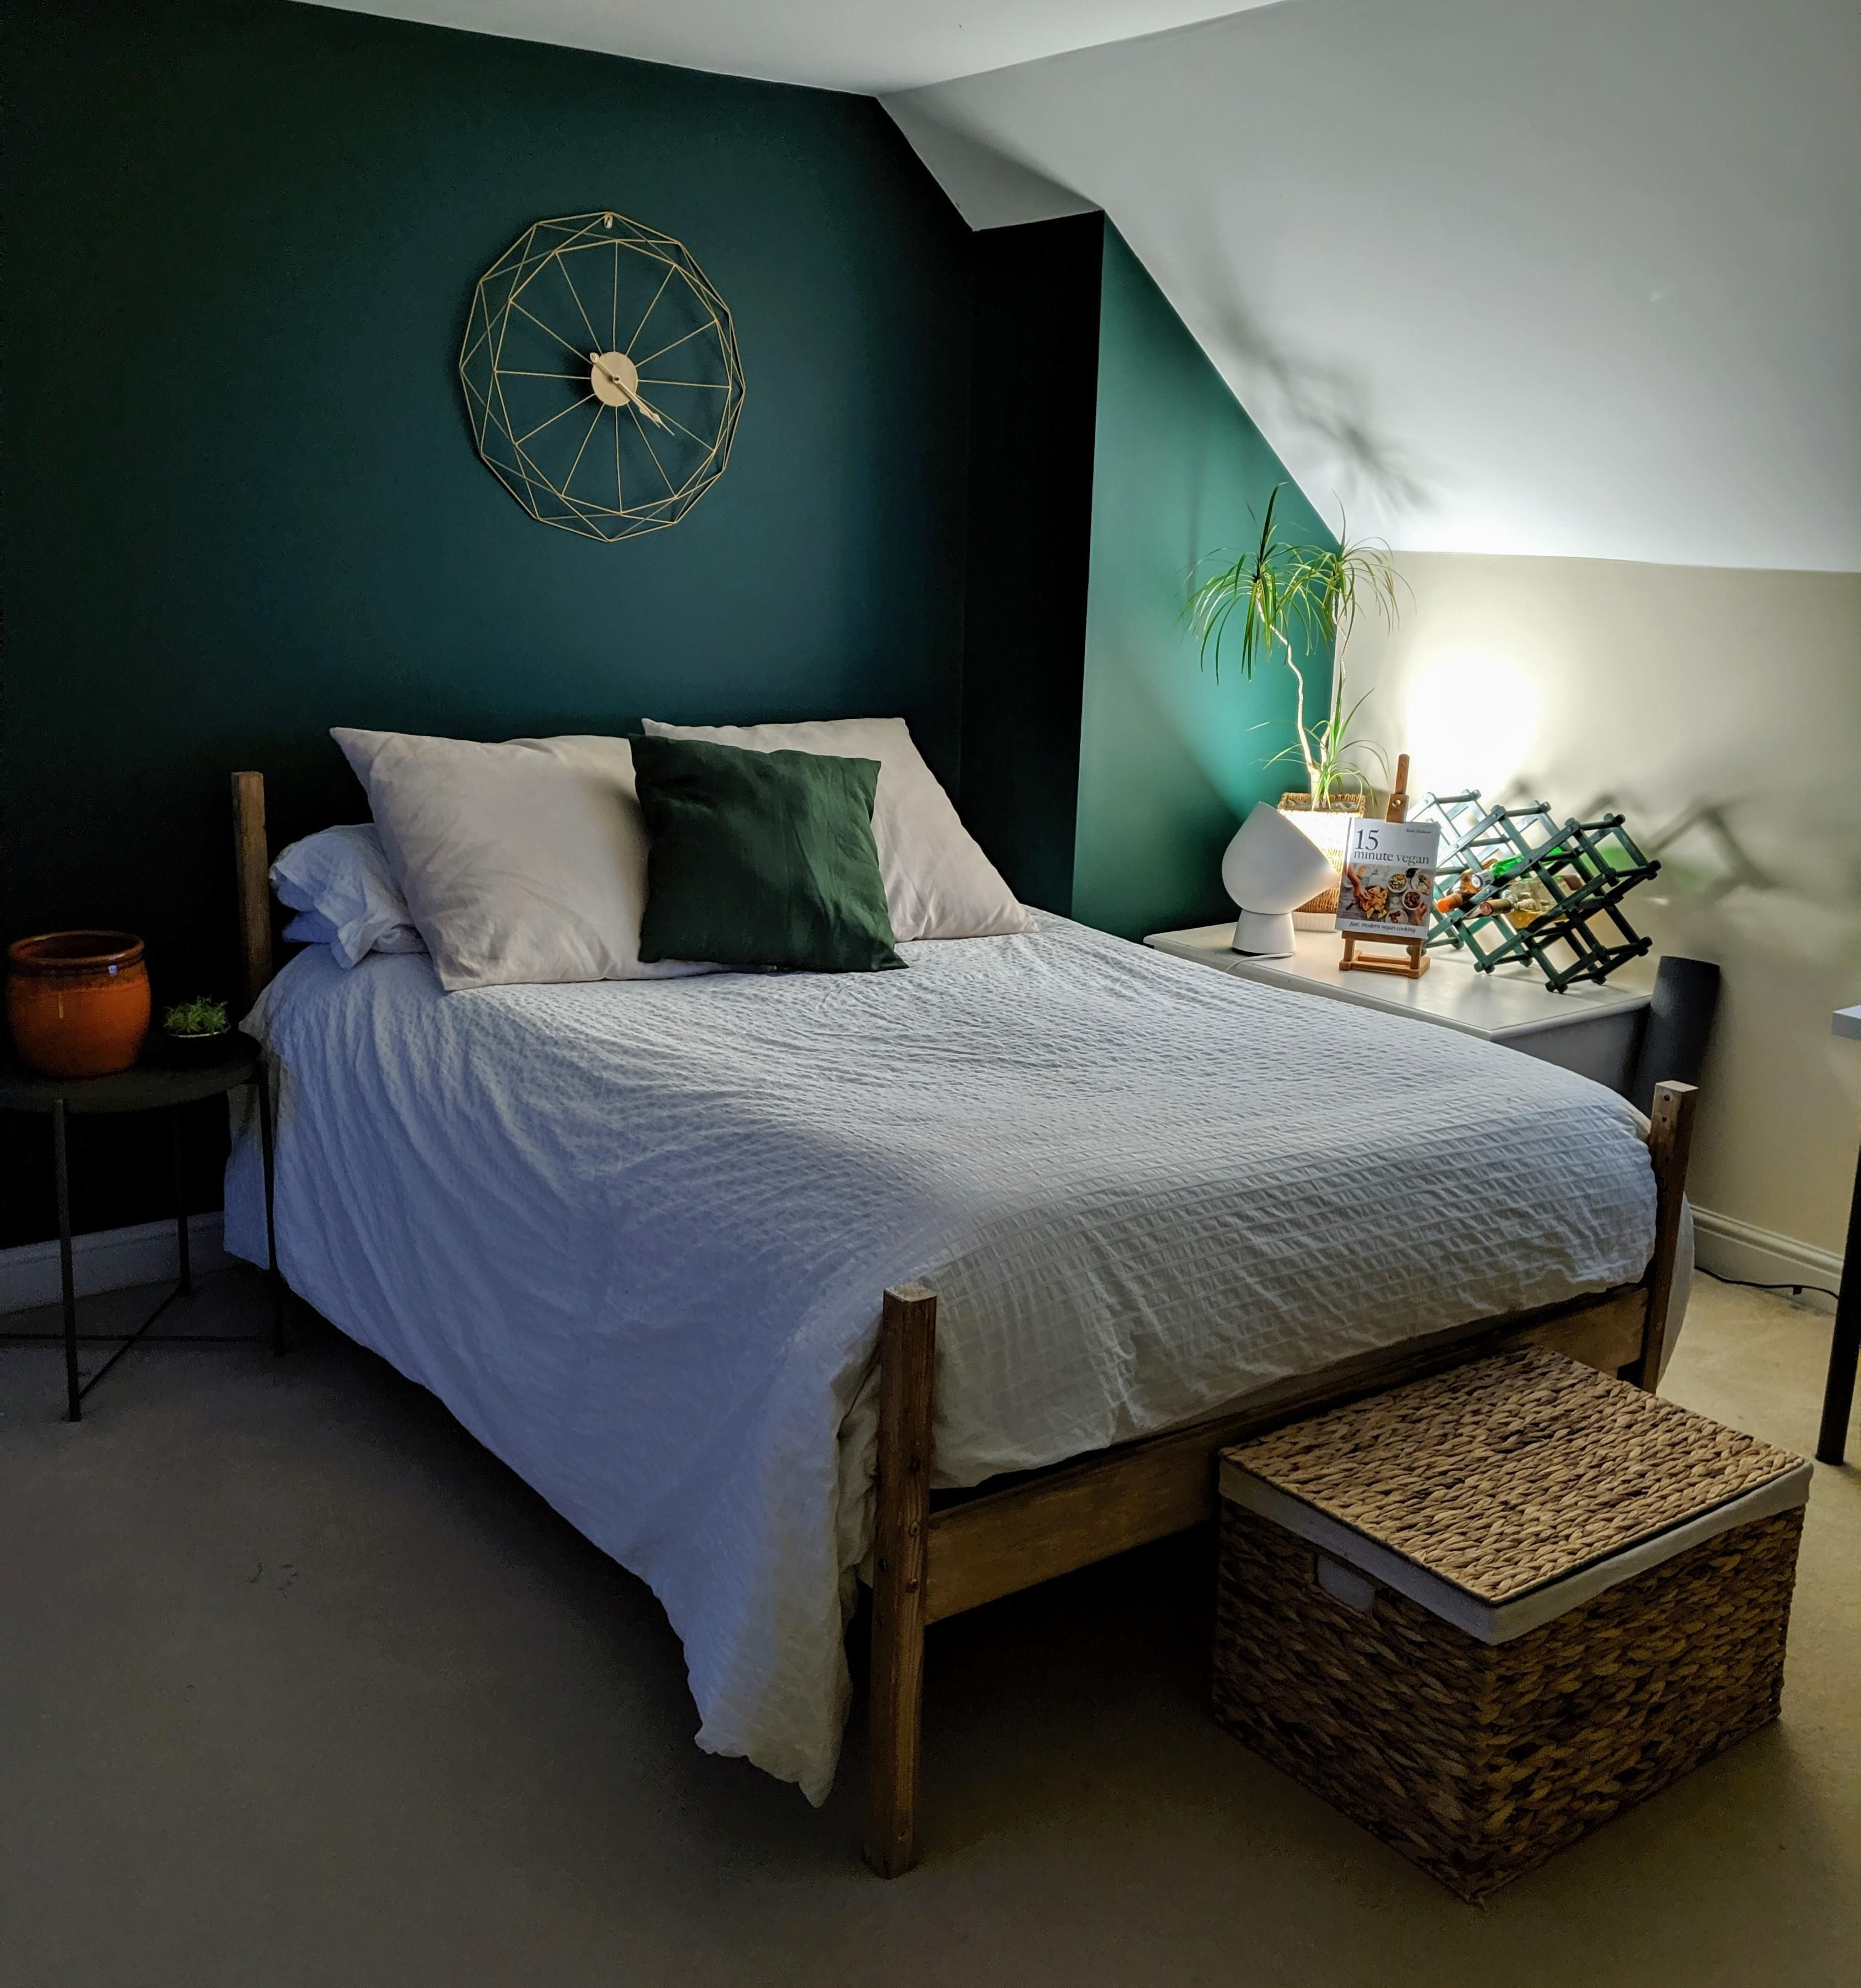 Pin By Maerie Scarlett On Home Office Redecorate Bedroom Room Inspiration Bedroom Diy Apartments